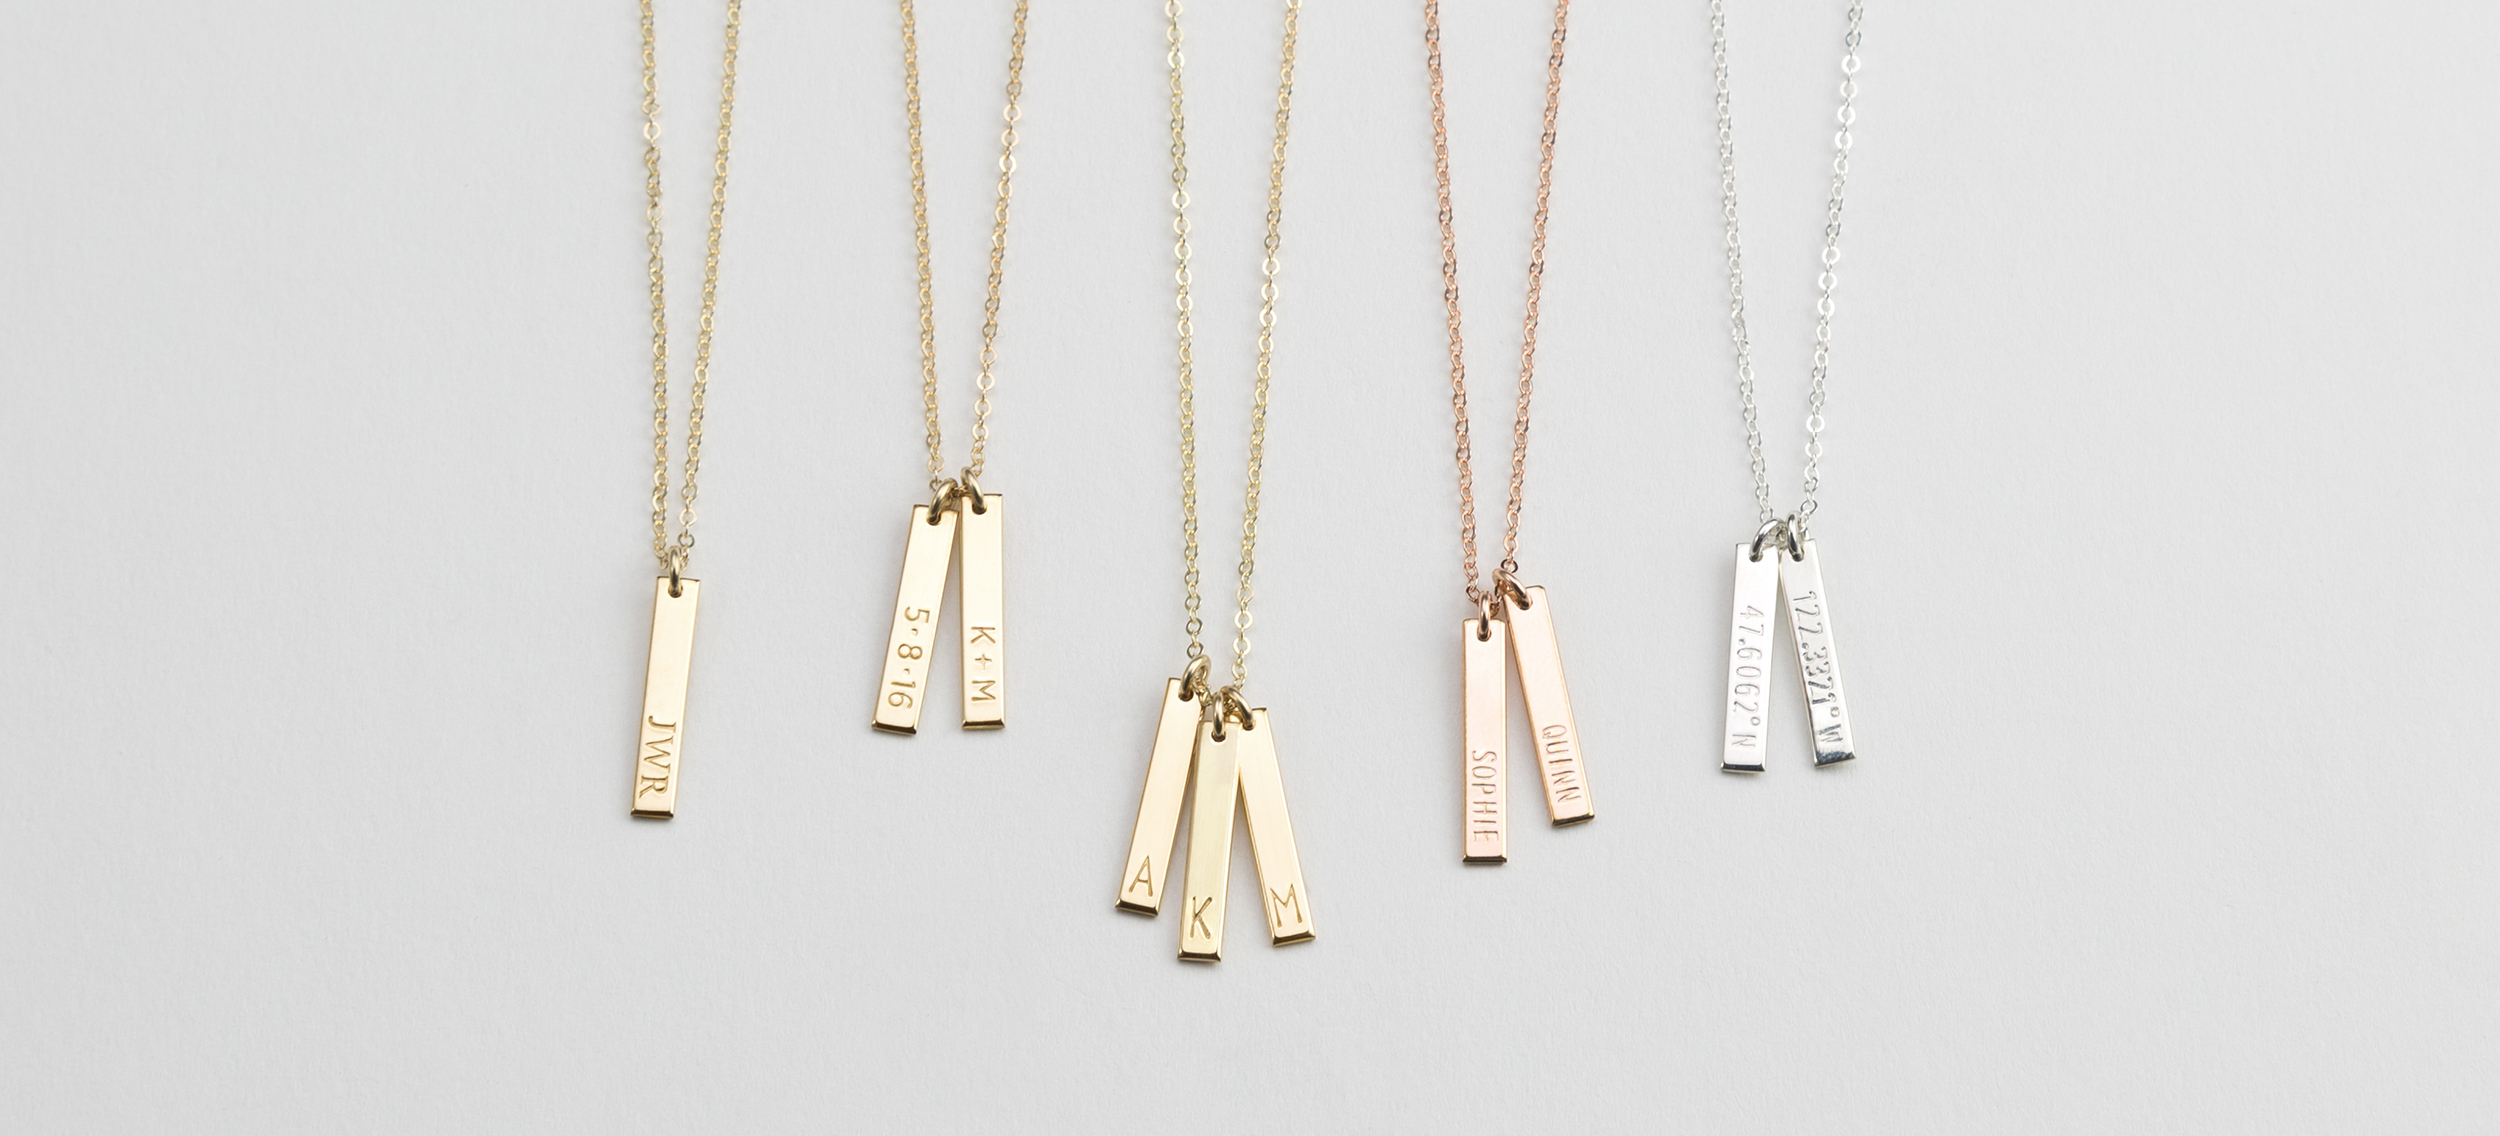 Personalized  Tiny Vertical Bar Tags Necklace